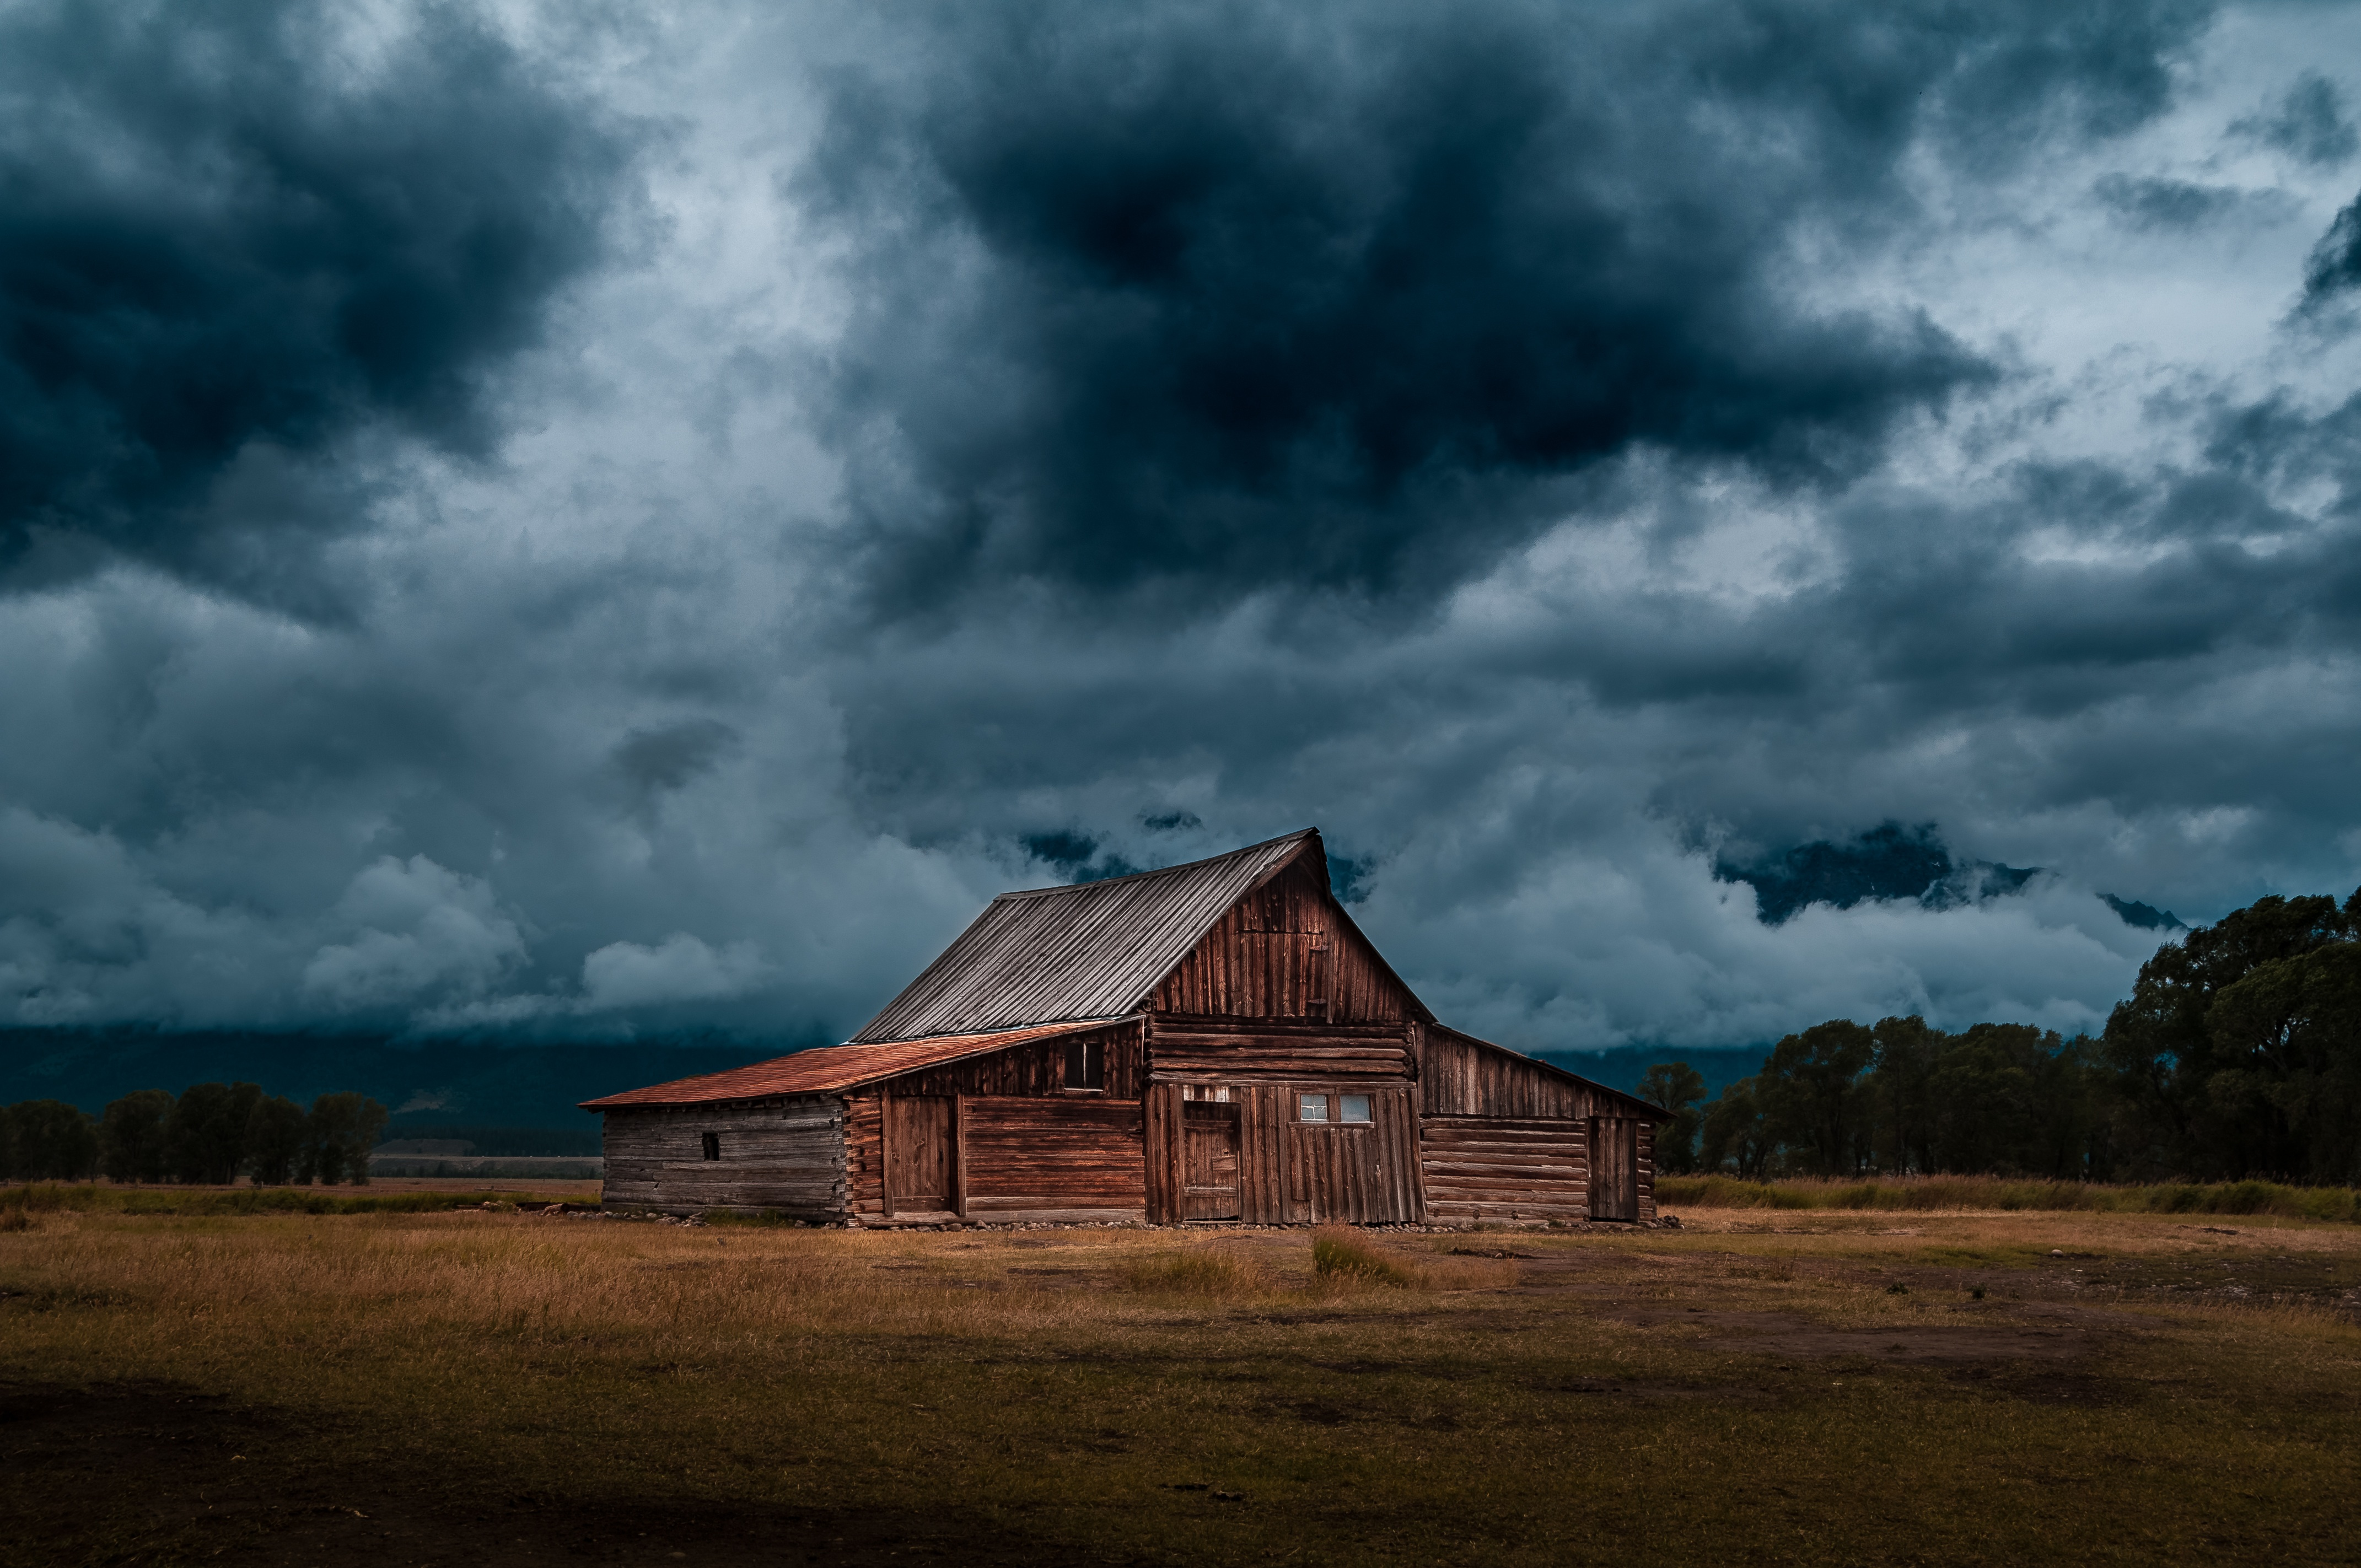 boss-fight-free-high-quality-stock-images-photos-photography-old-barn-dark-clouds - Copie